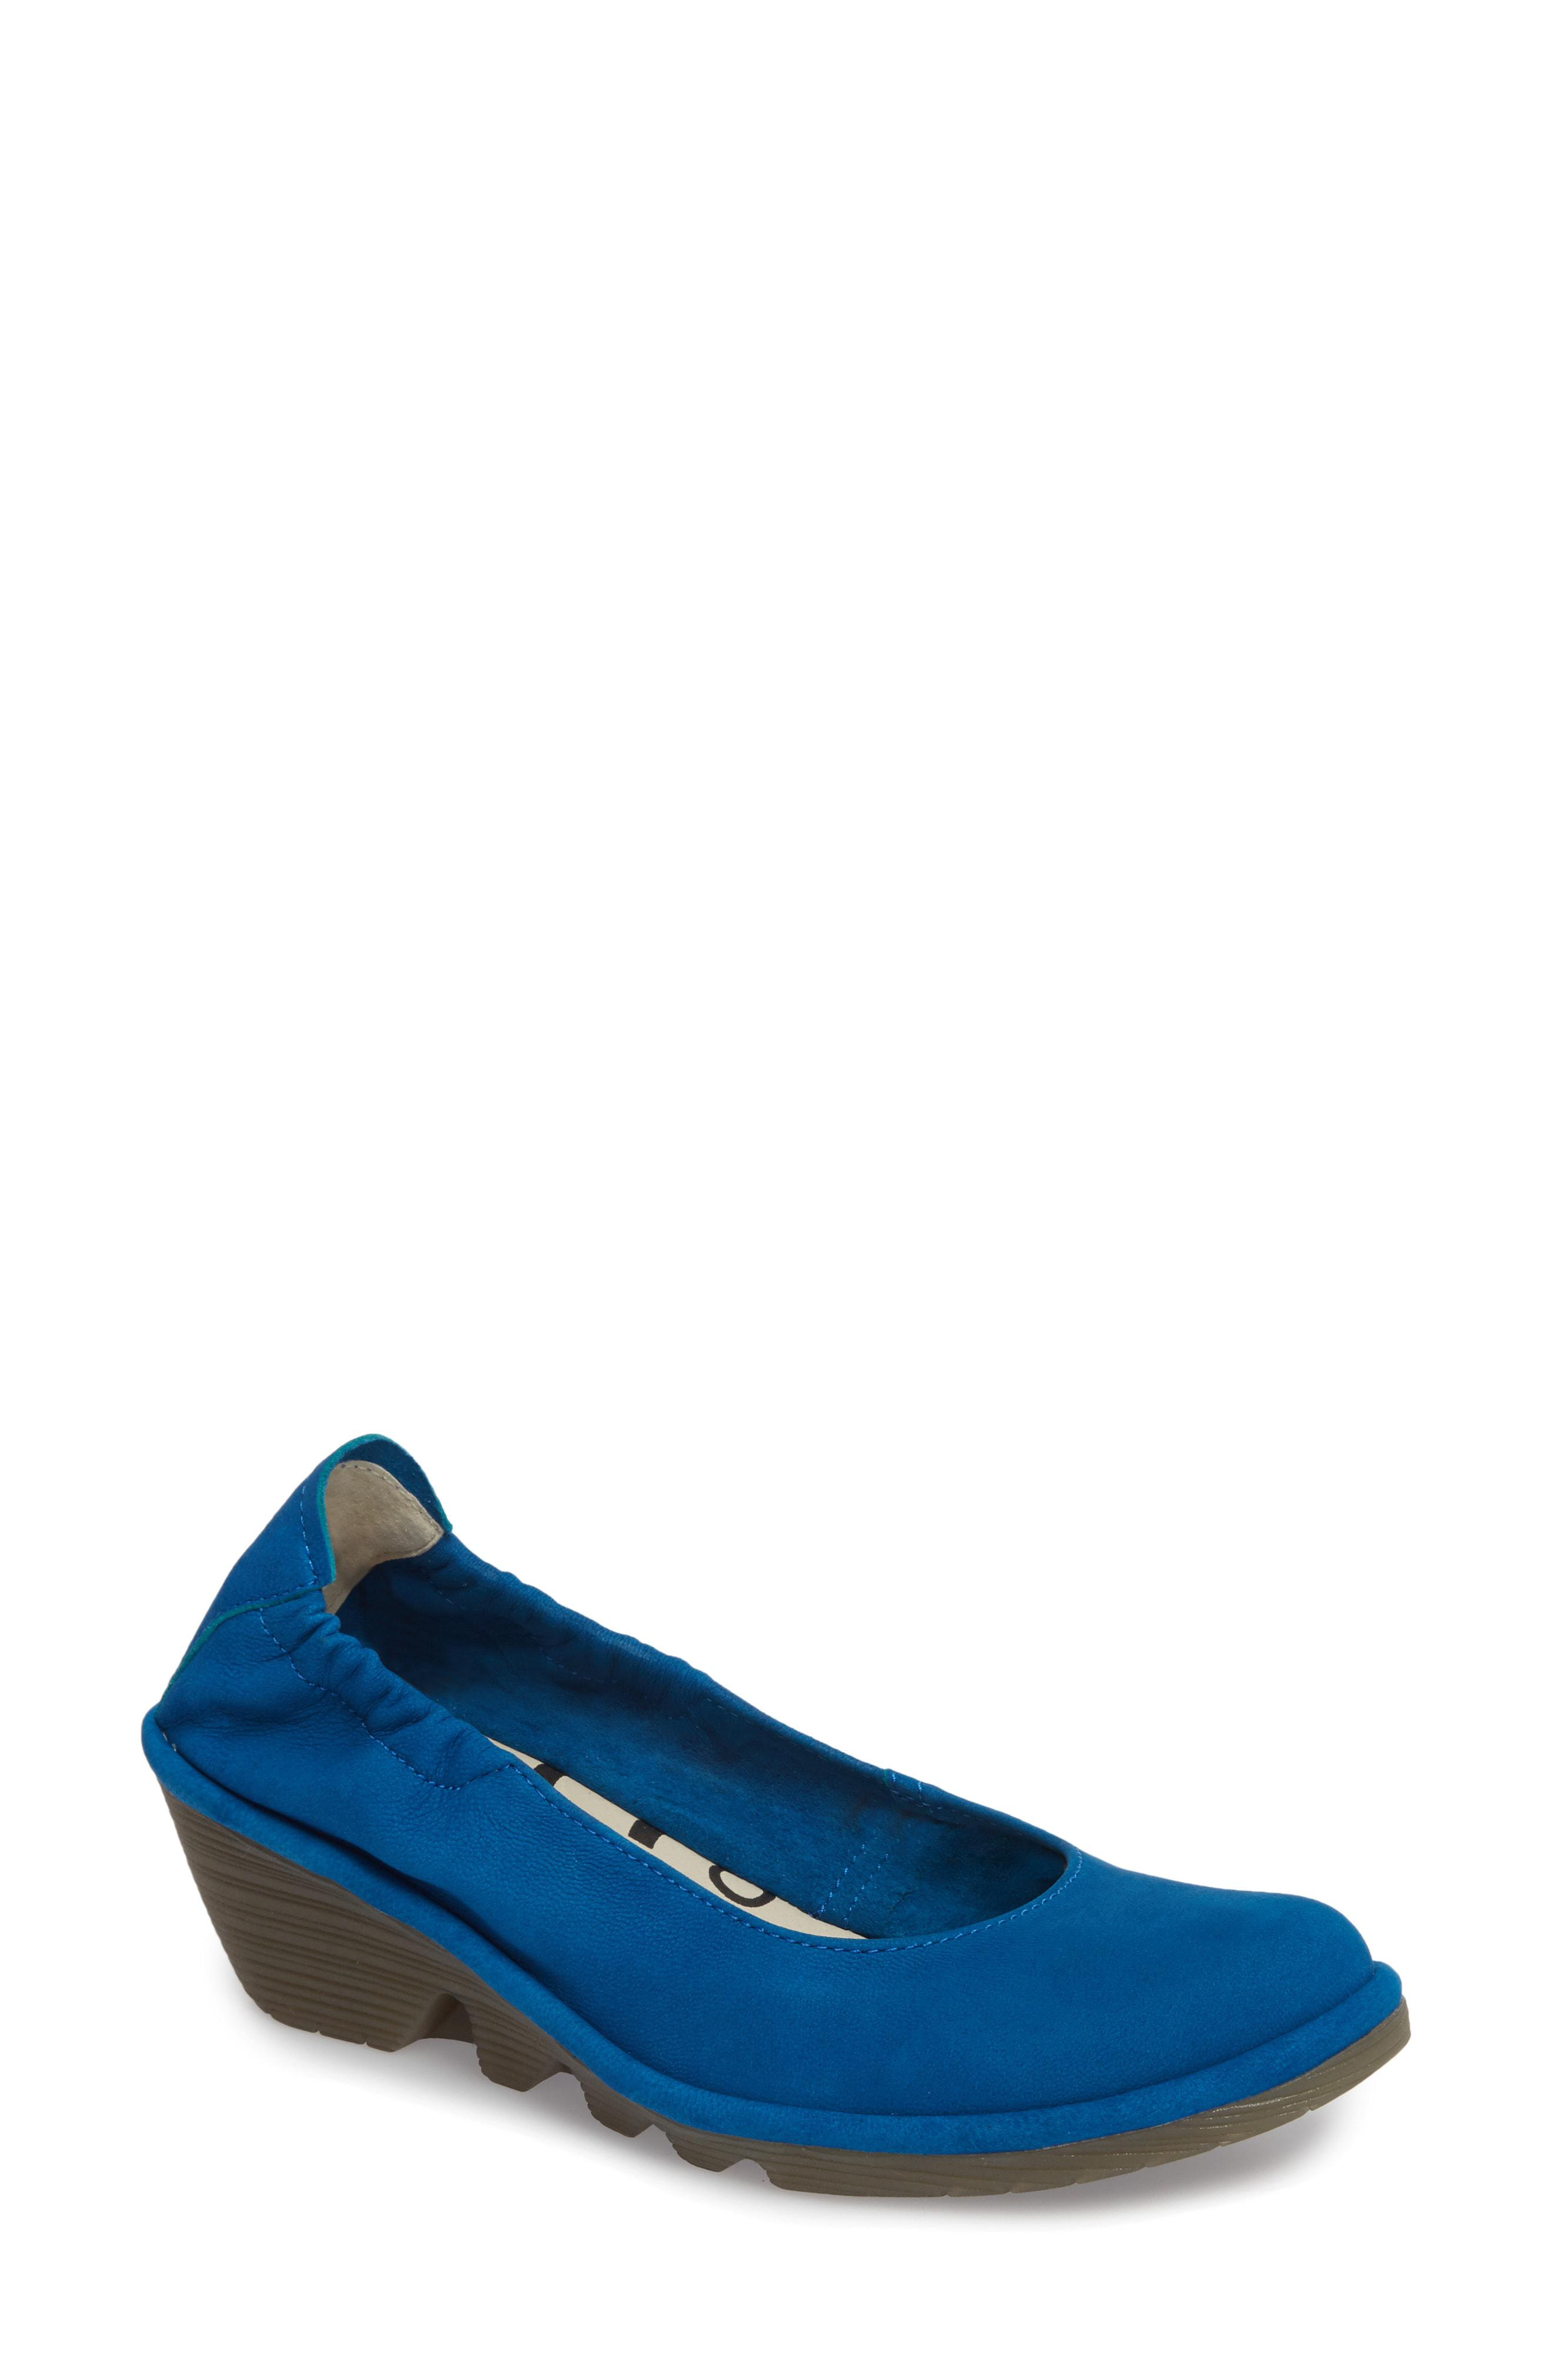 d1e100f9ca4 Fly London Pled Wedge in Black - Save 50% - Lyst